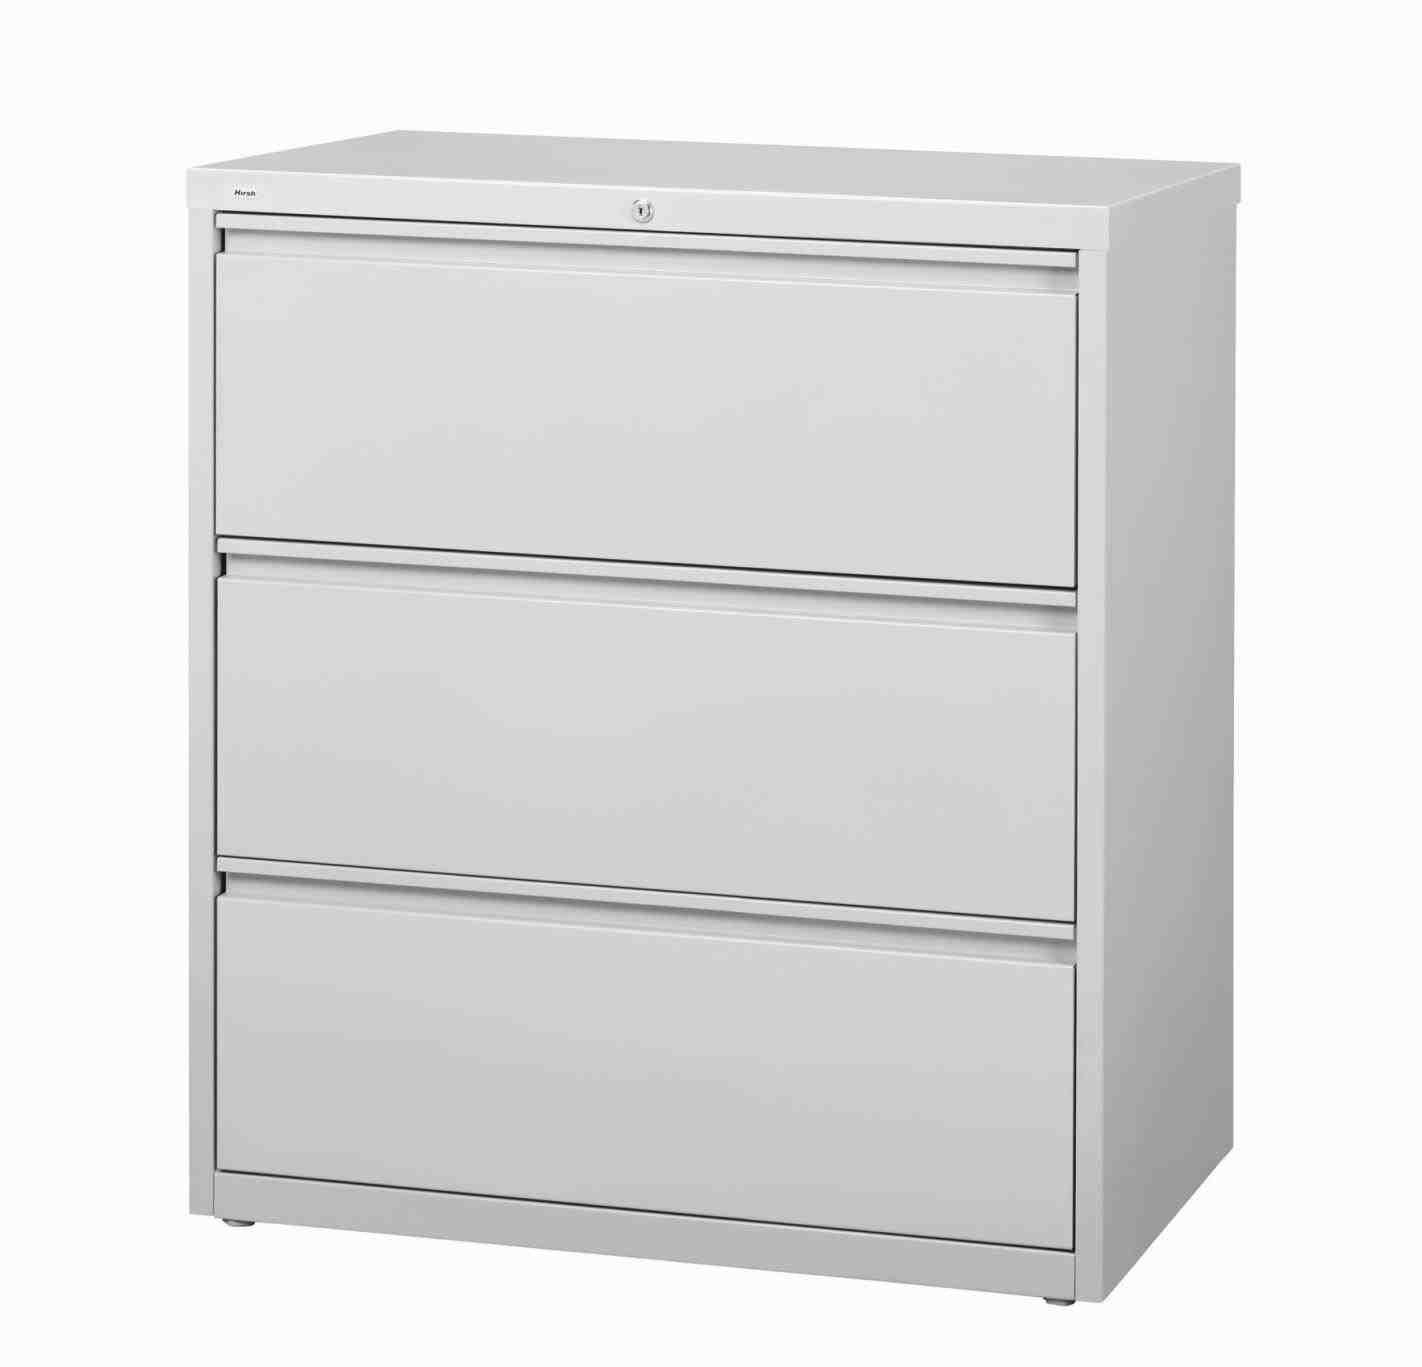 Luxury Hirsh Industries File Cabinet